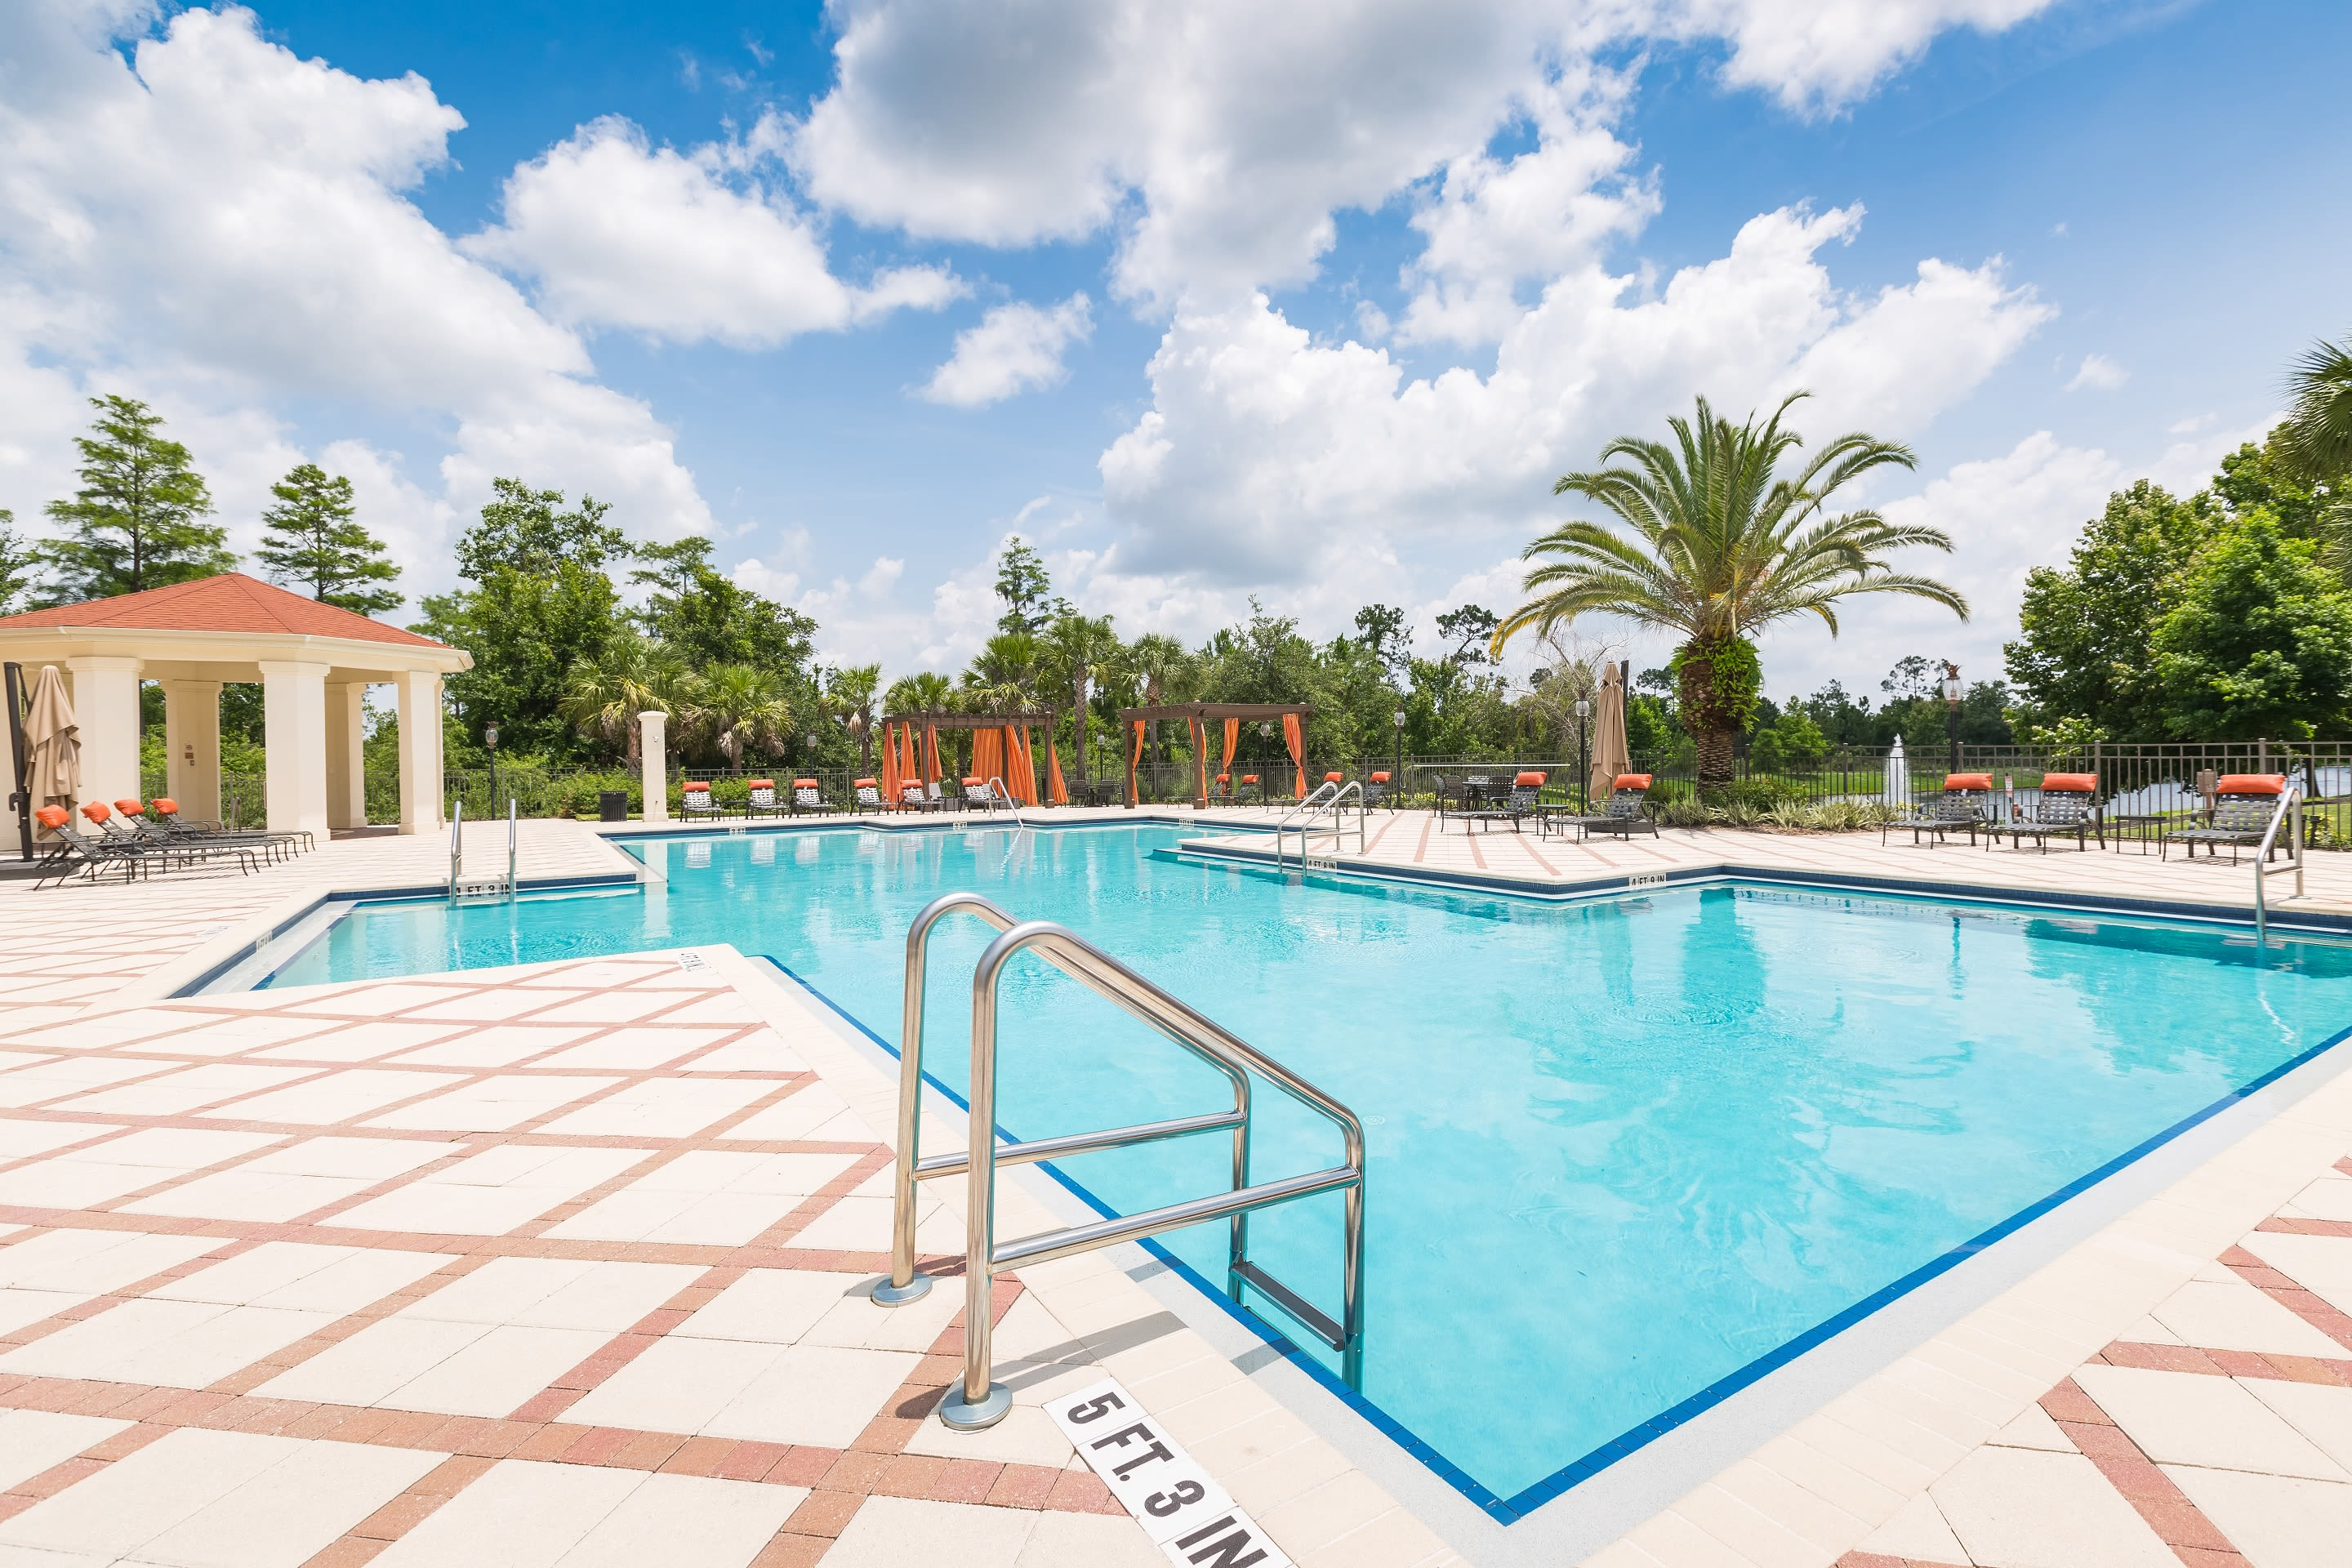 Swimming pool at The Aspect in Kissimmee, Florida